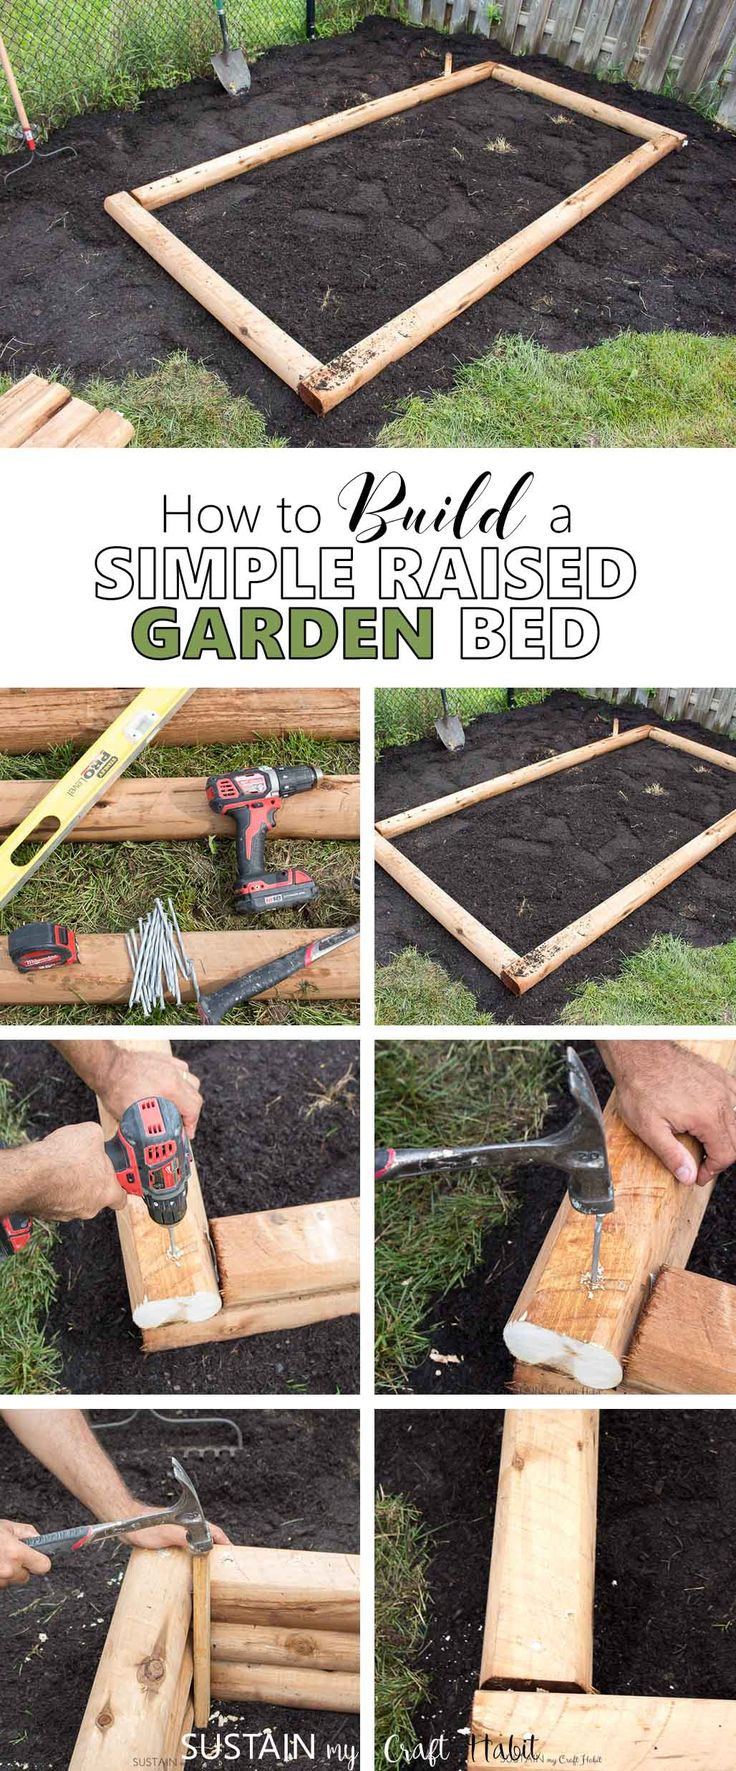 How to Build a Simple Raised Garden Bed (also known as a Garden Box)